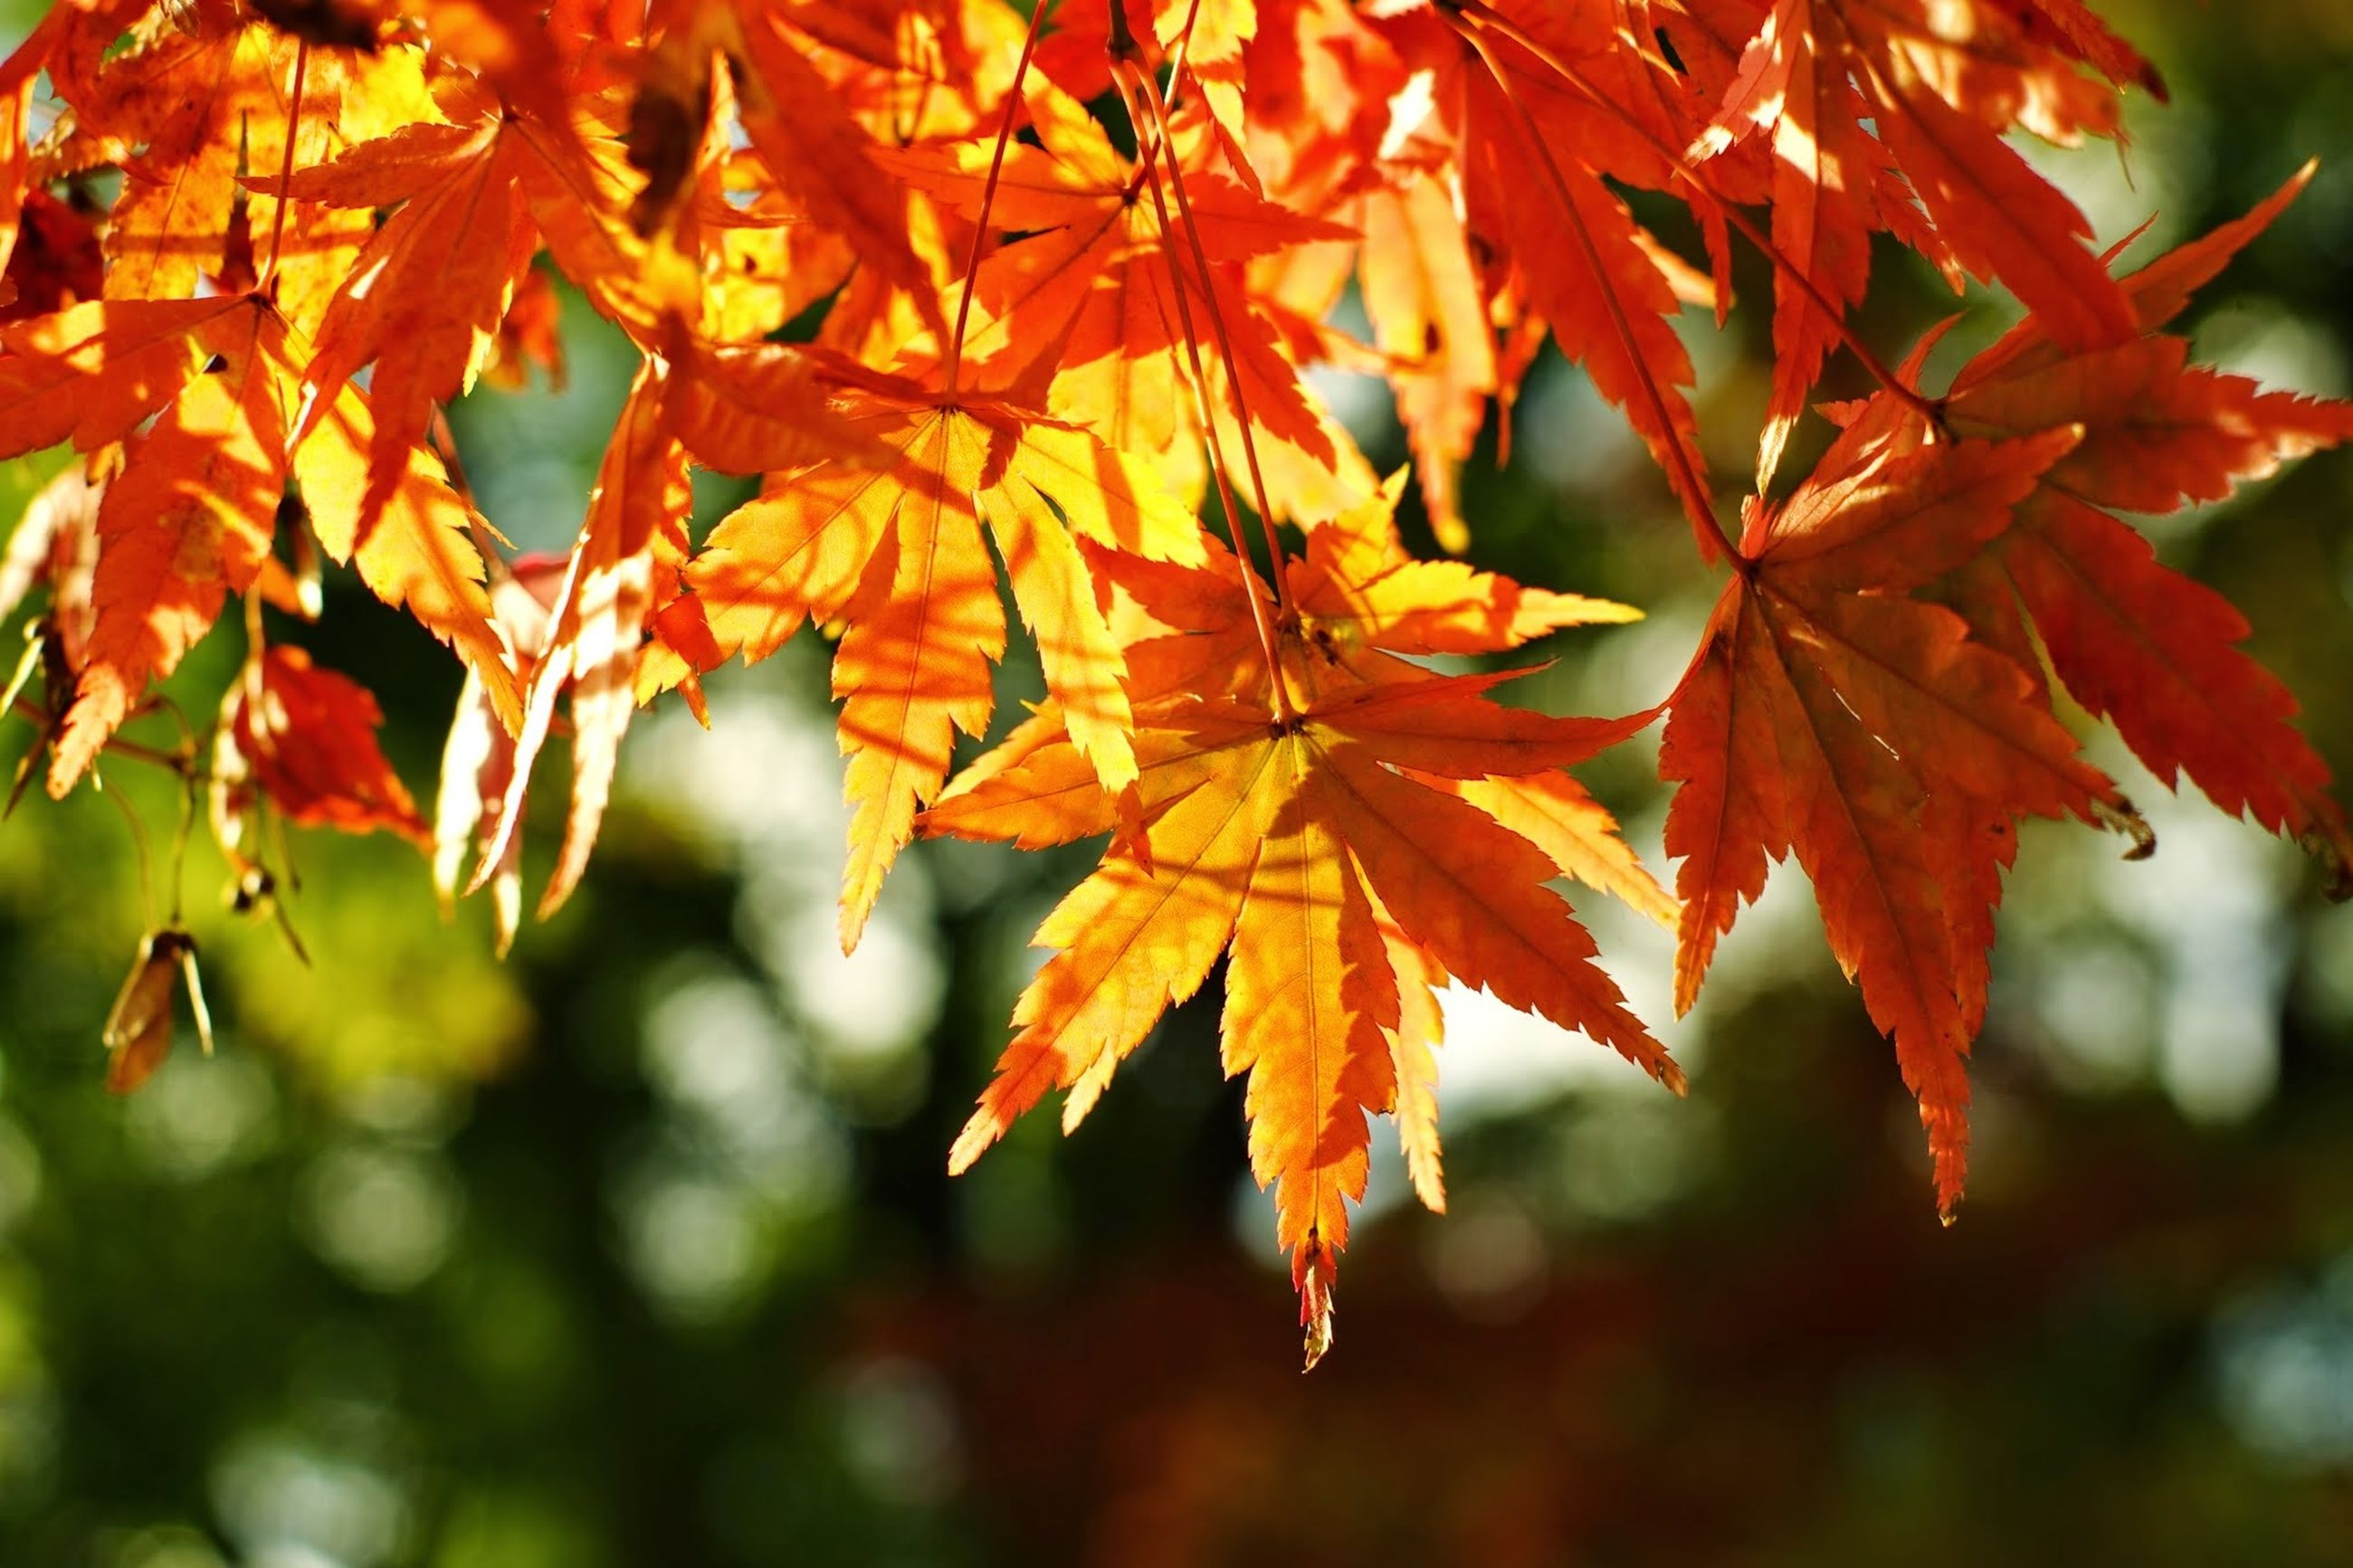 autumn, change, orange color, leaf, branch, focus on foreground, season, tree, close-up, growth, nature, red, beauty in nature, leaves, maple leaf, selective focus, tranquility, twig, outdoors, day